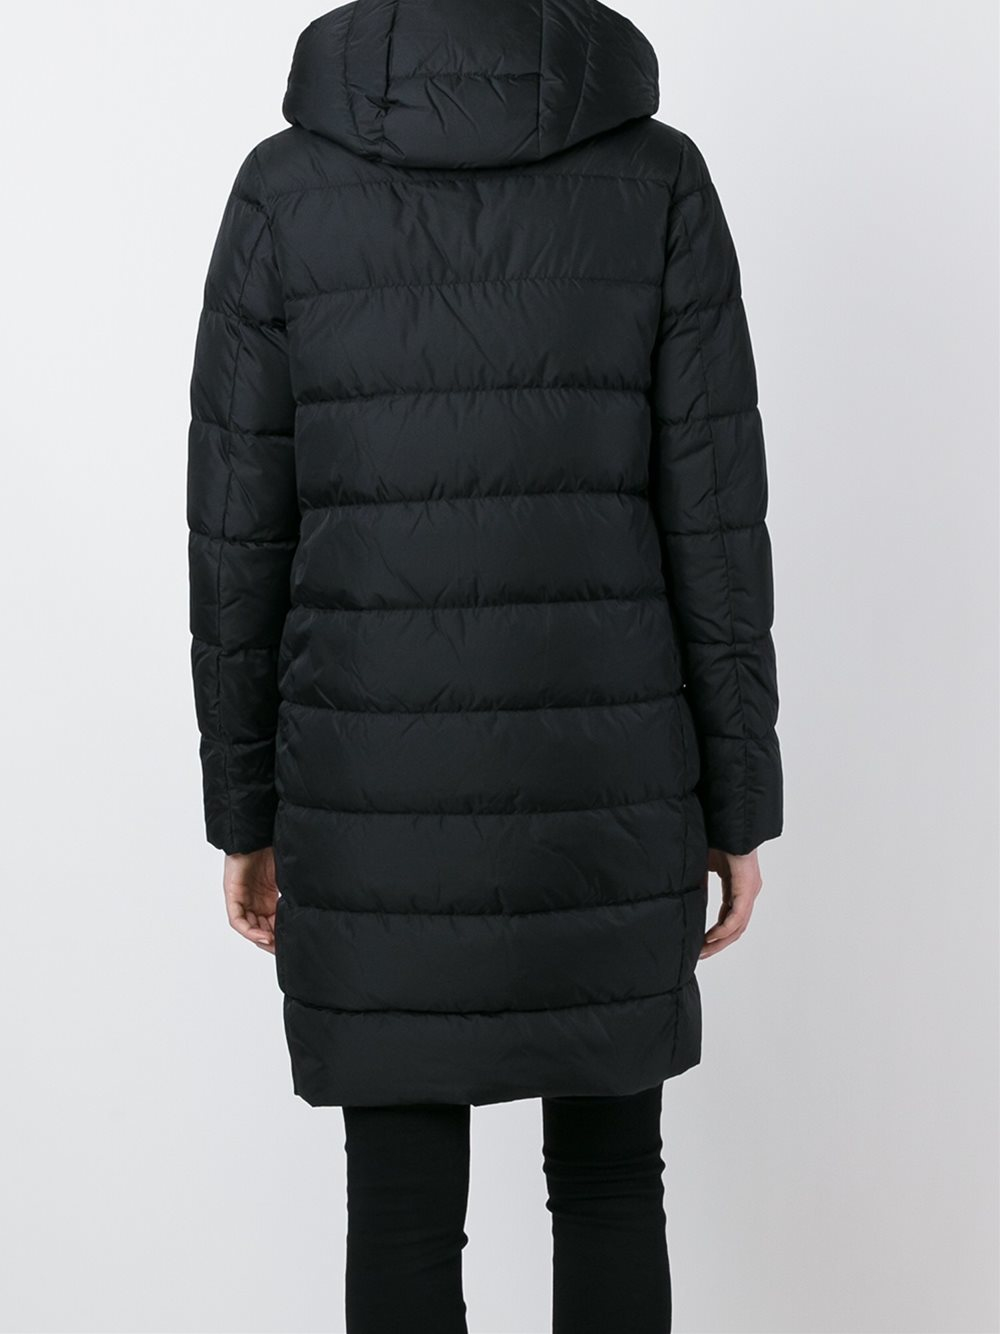 Lyst - Herno Hooded Puffer Coat in Black